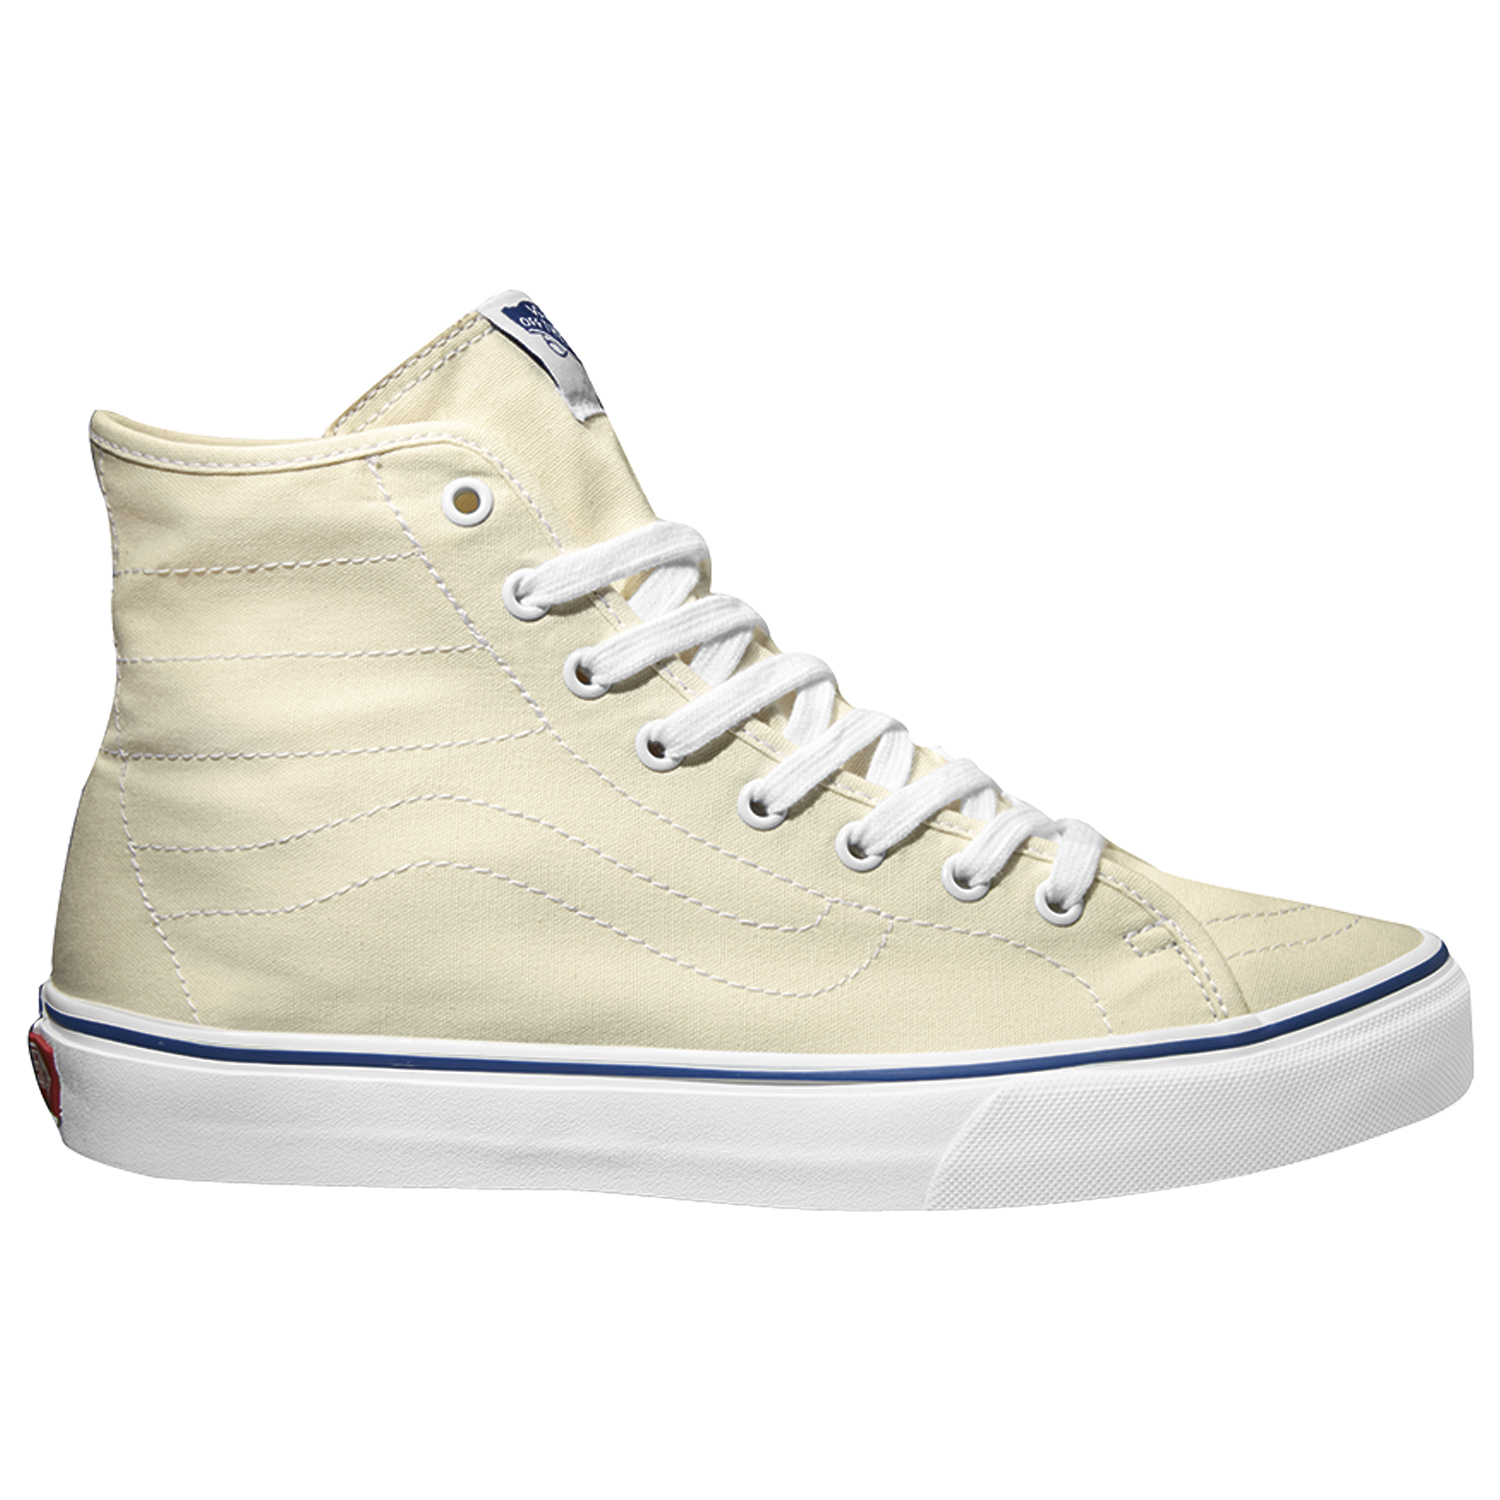 vans-sk8-hi-decon-canvas-classic-white-true-white-119-90